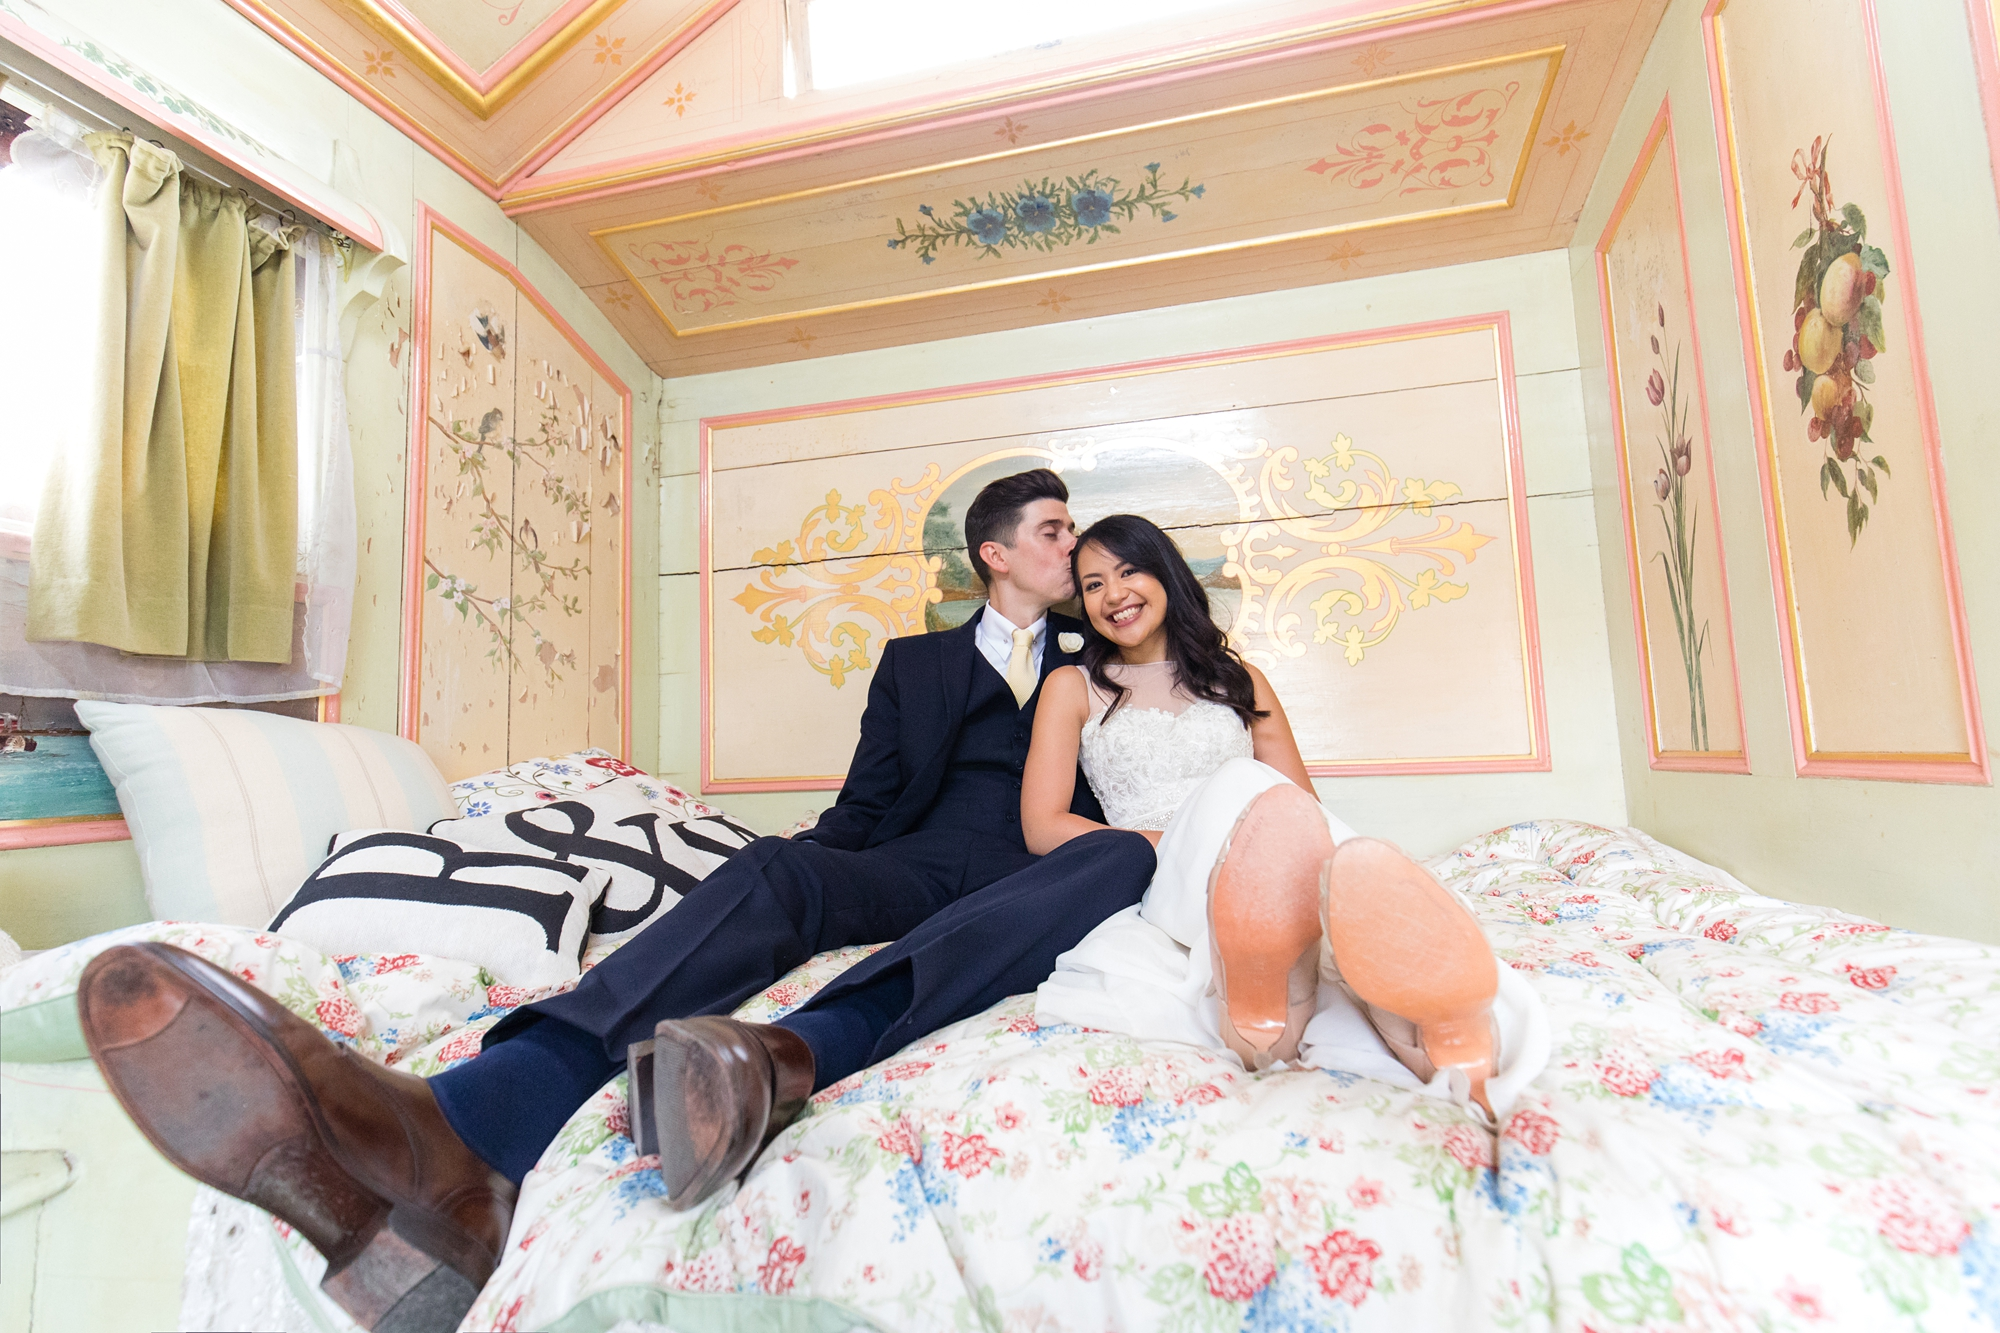 Preston Court Wedding Photography couples portraits inside gypsy van